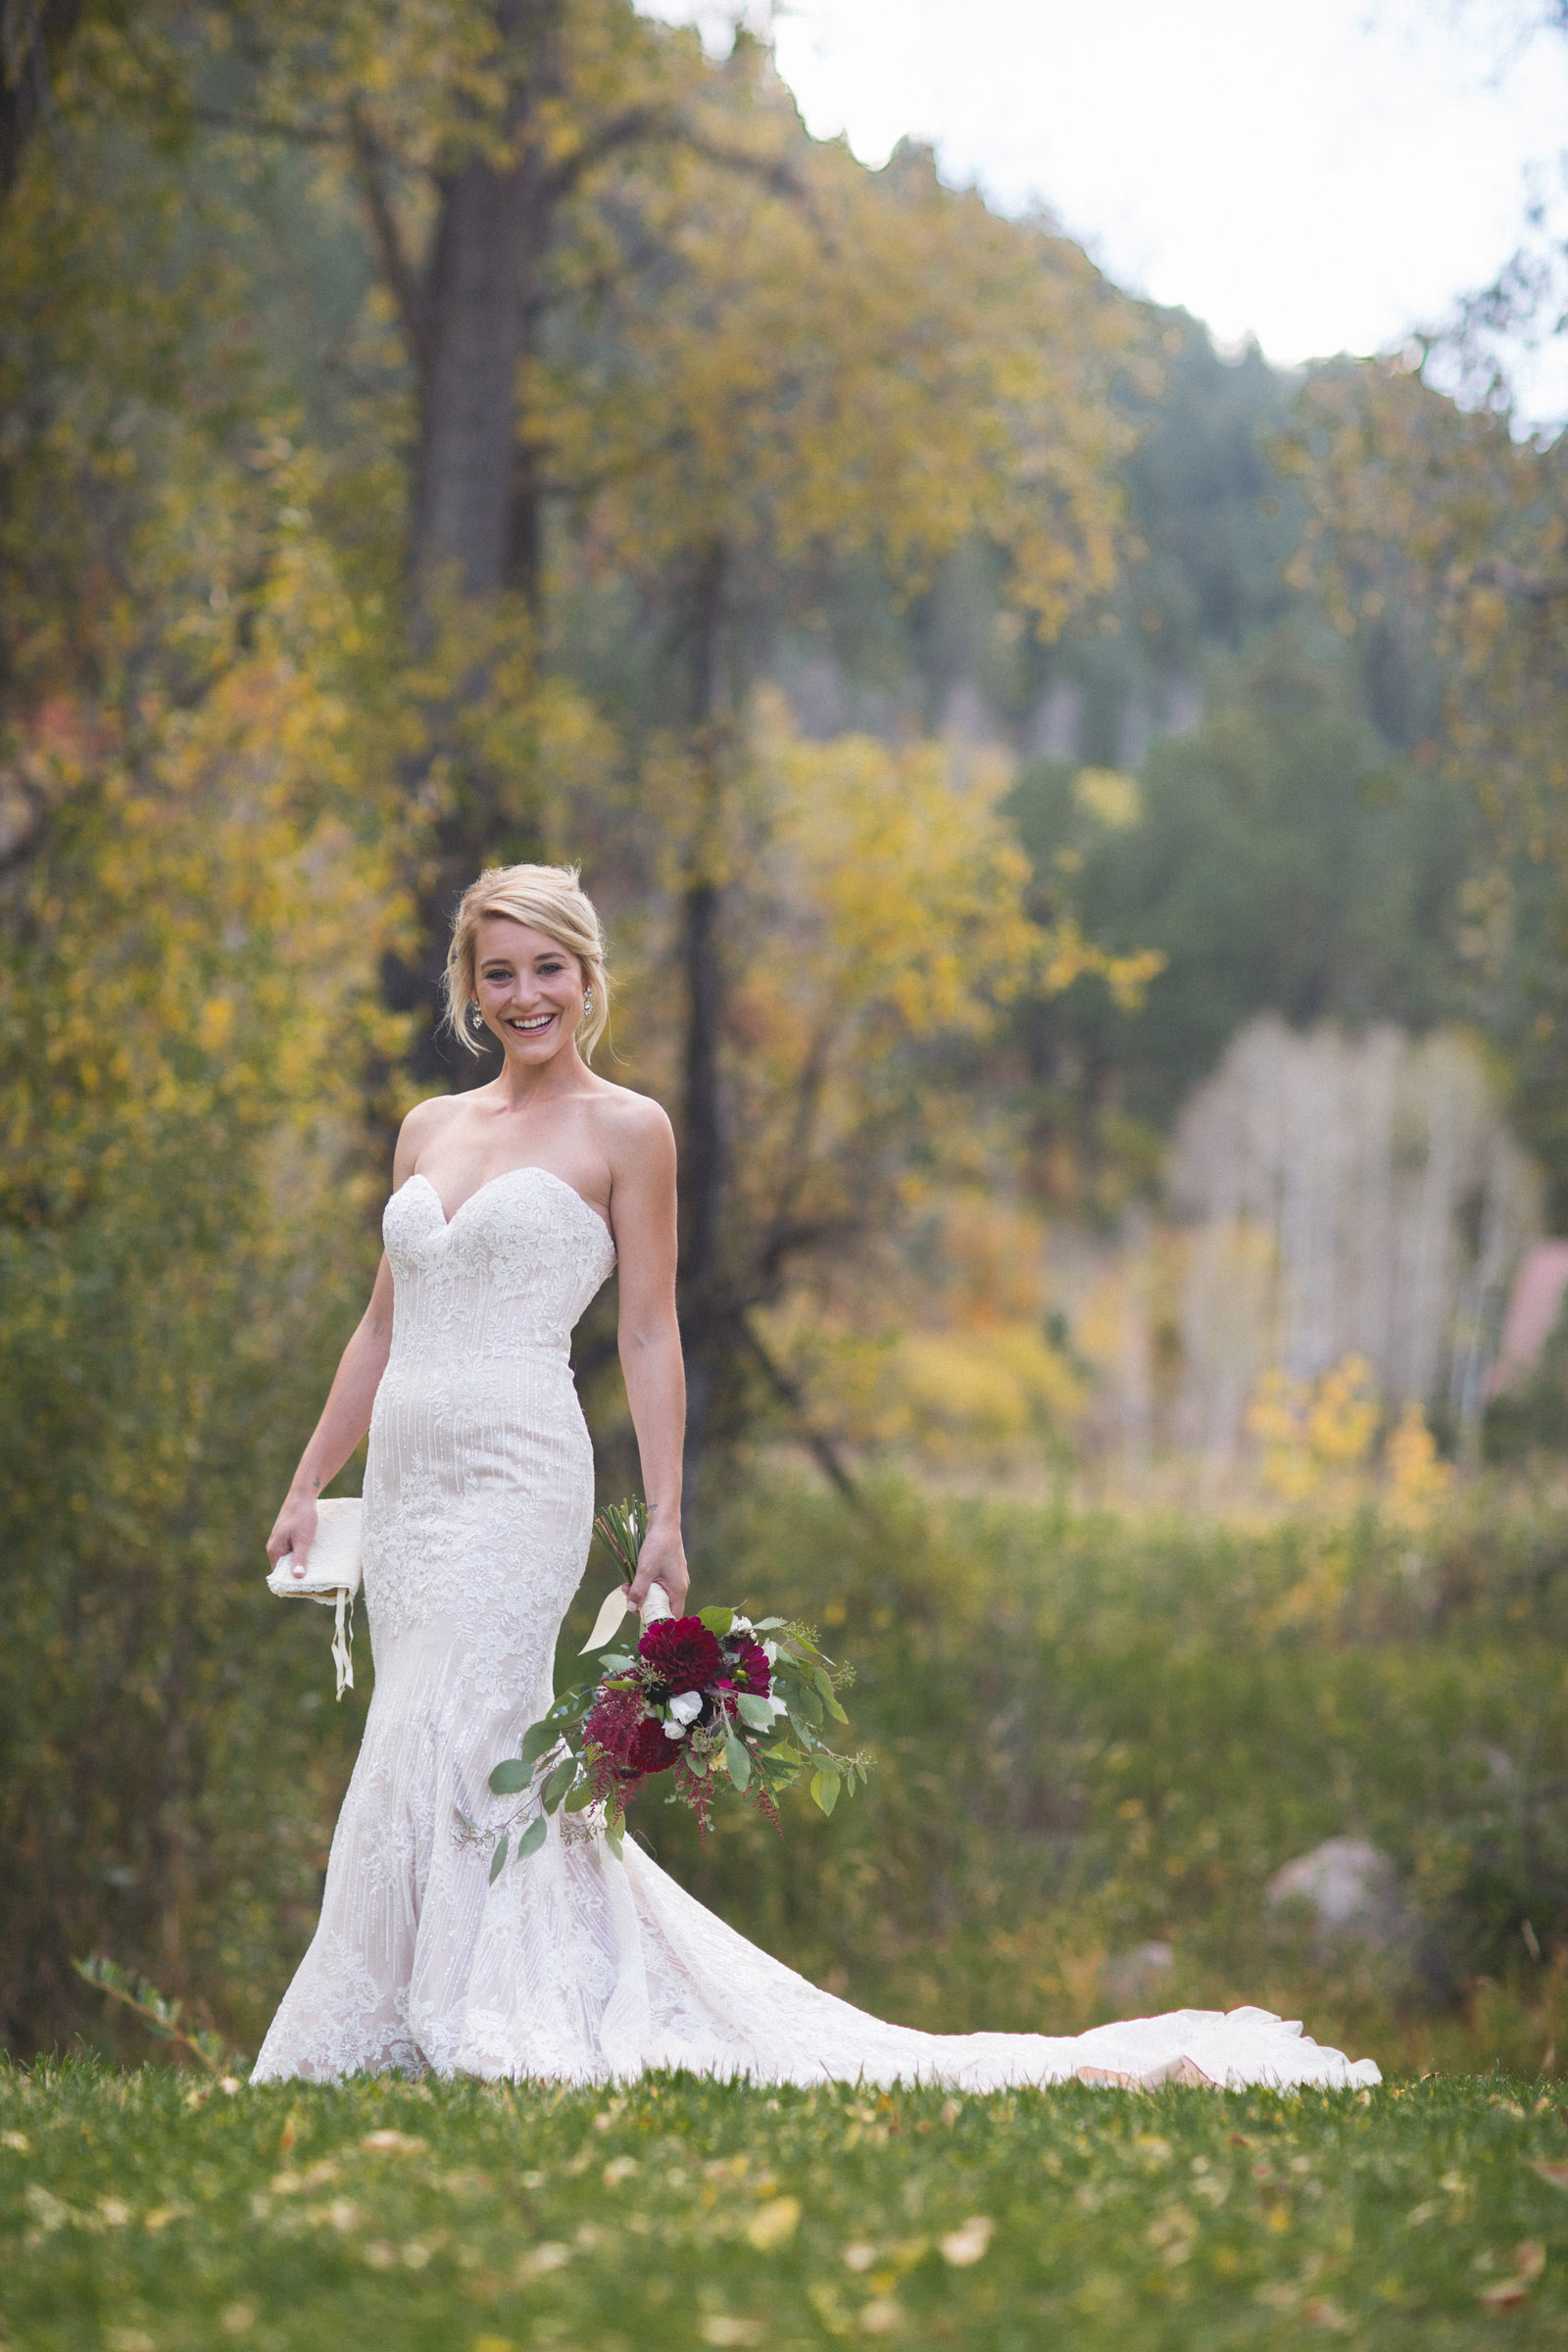 037-beautiful-portrait-of-bride-in-dress-in-nature-and-photojournalistic-photography-in-durango-colorado-elopement-wedding